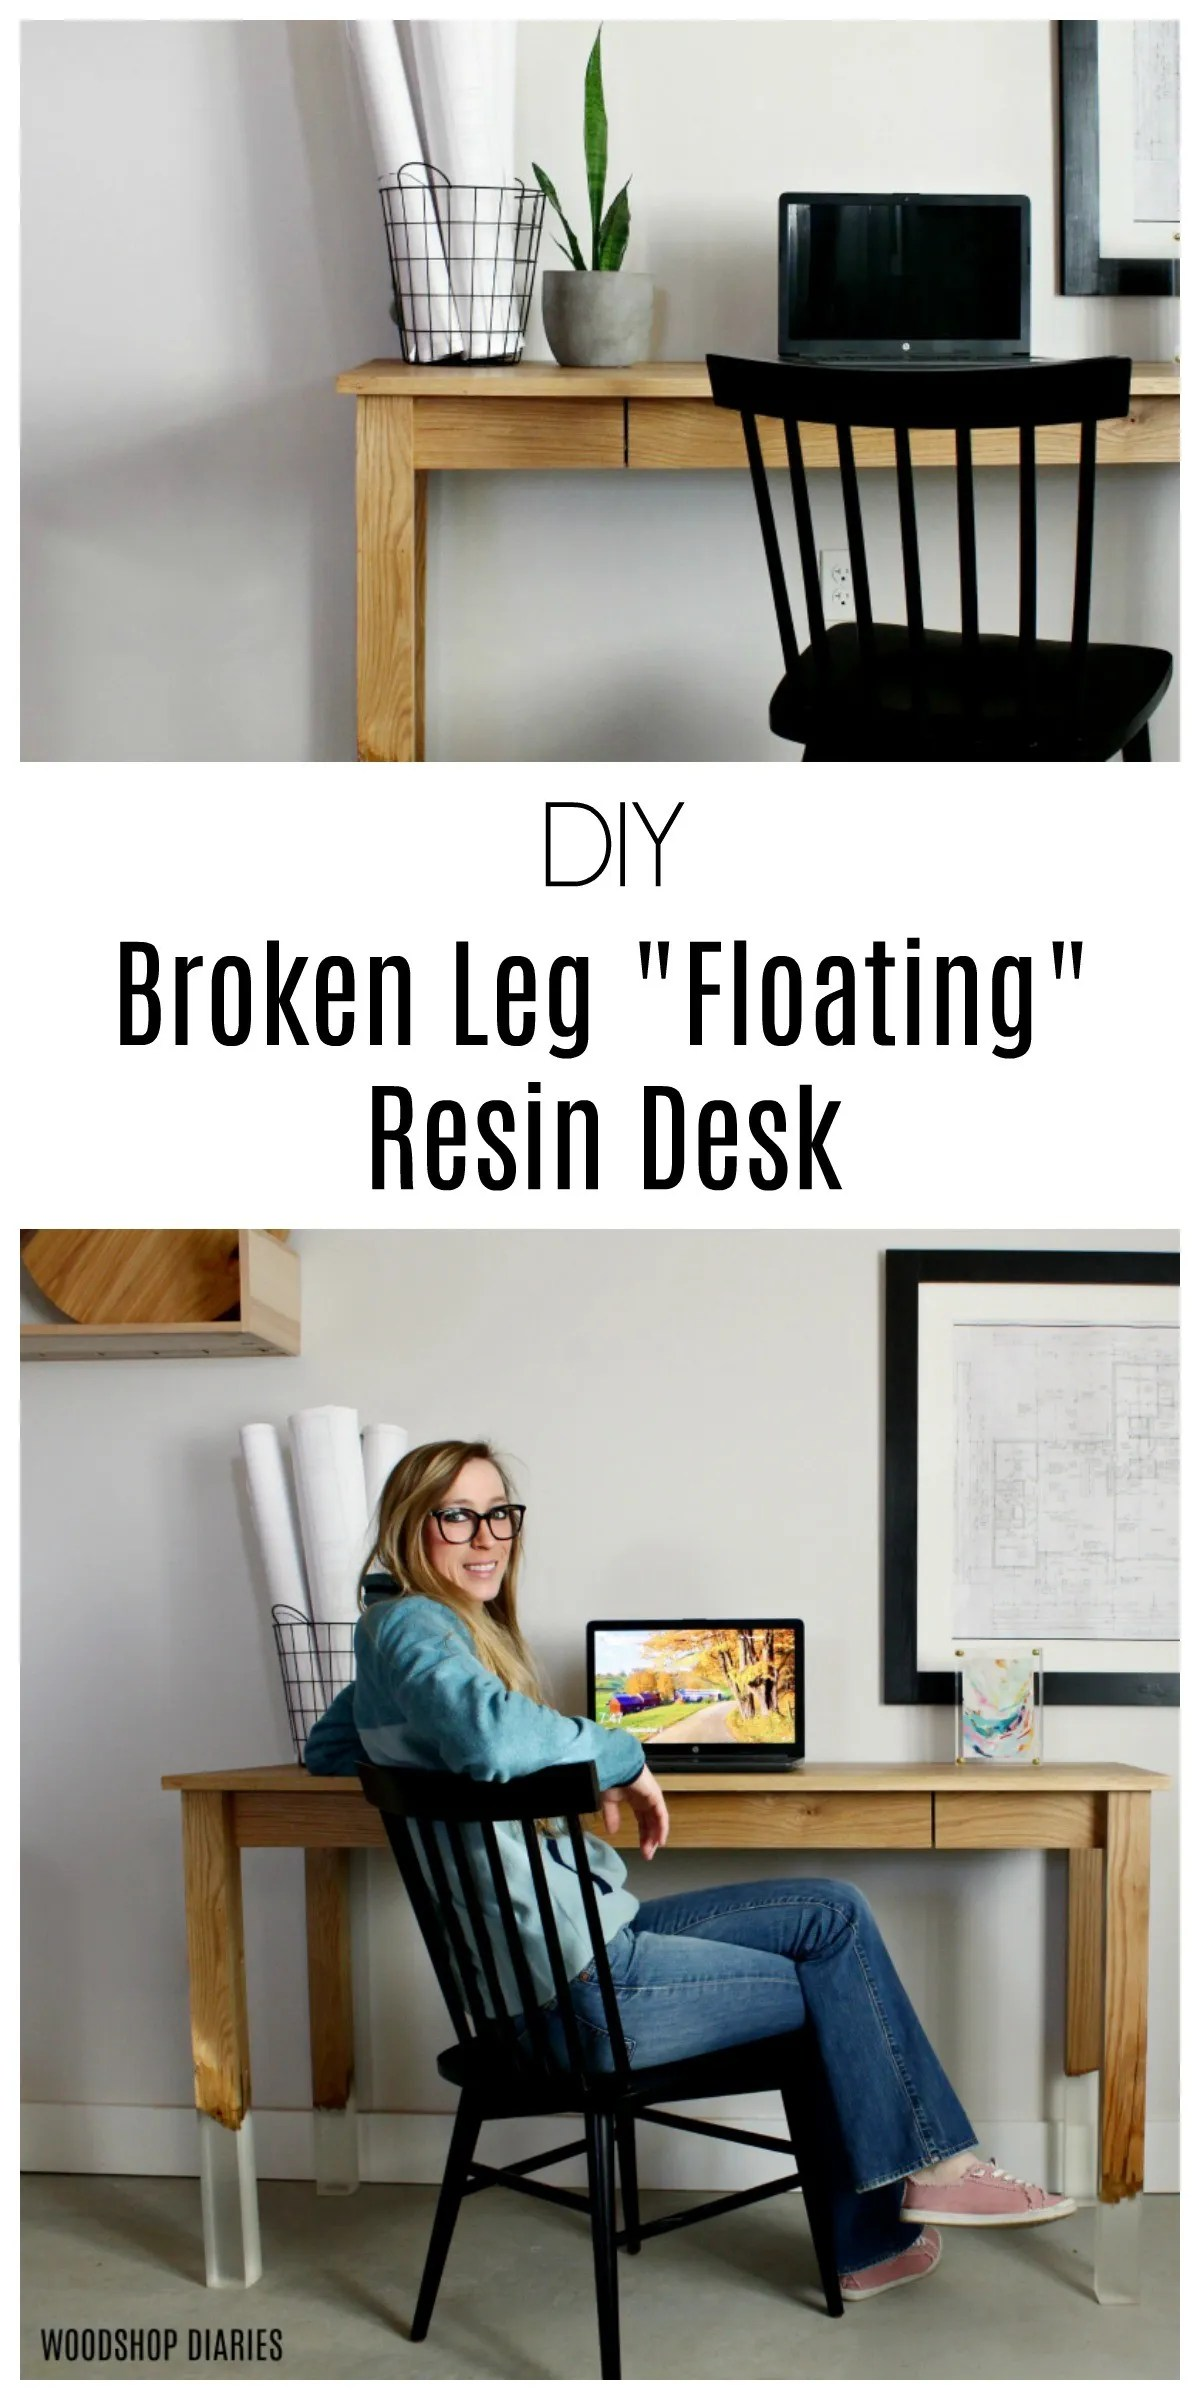 Floating Broken Leg DIY Resin Desk--A Unique Design, Free Plans, and Video Tutorial